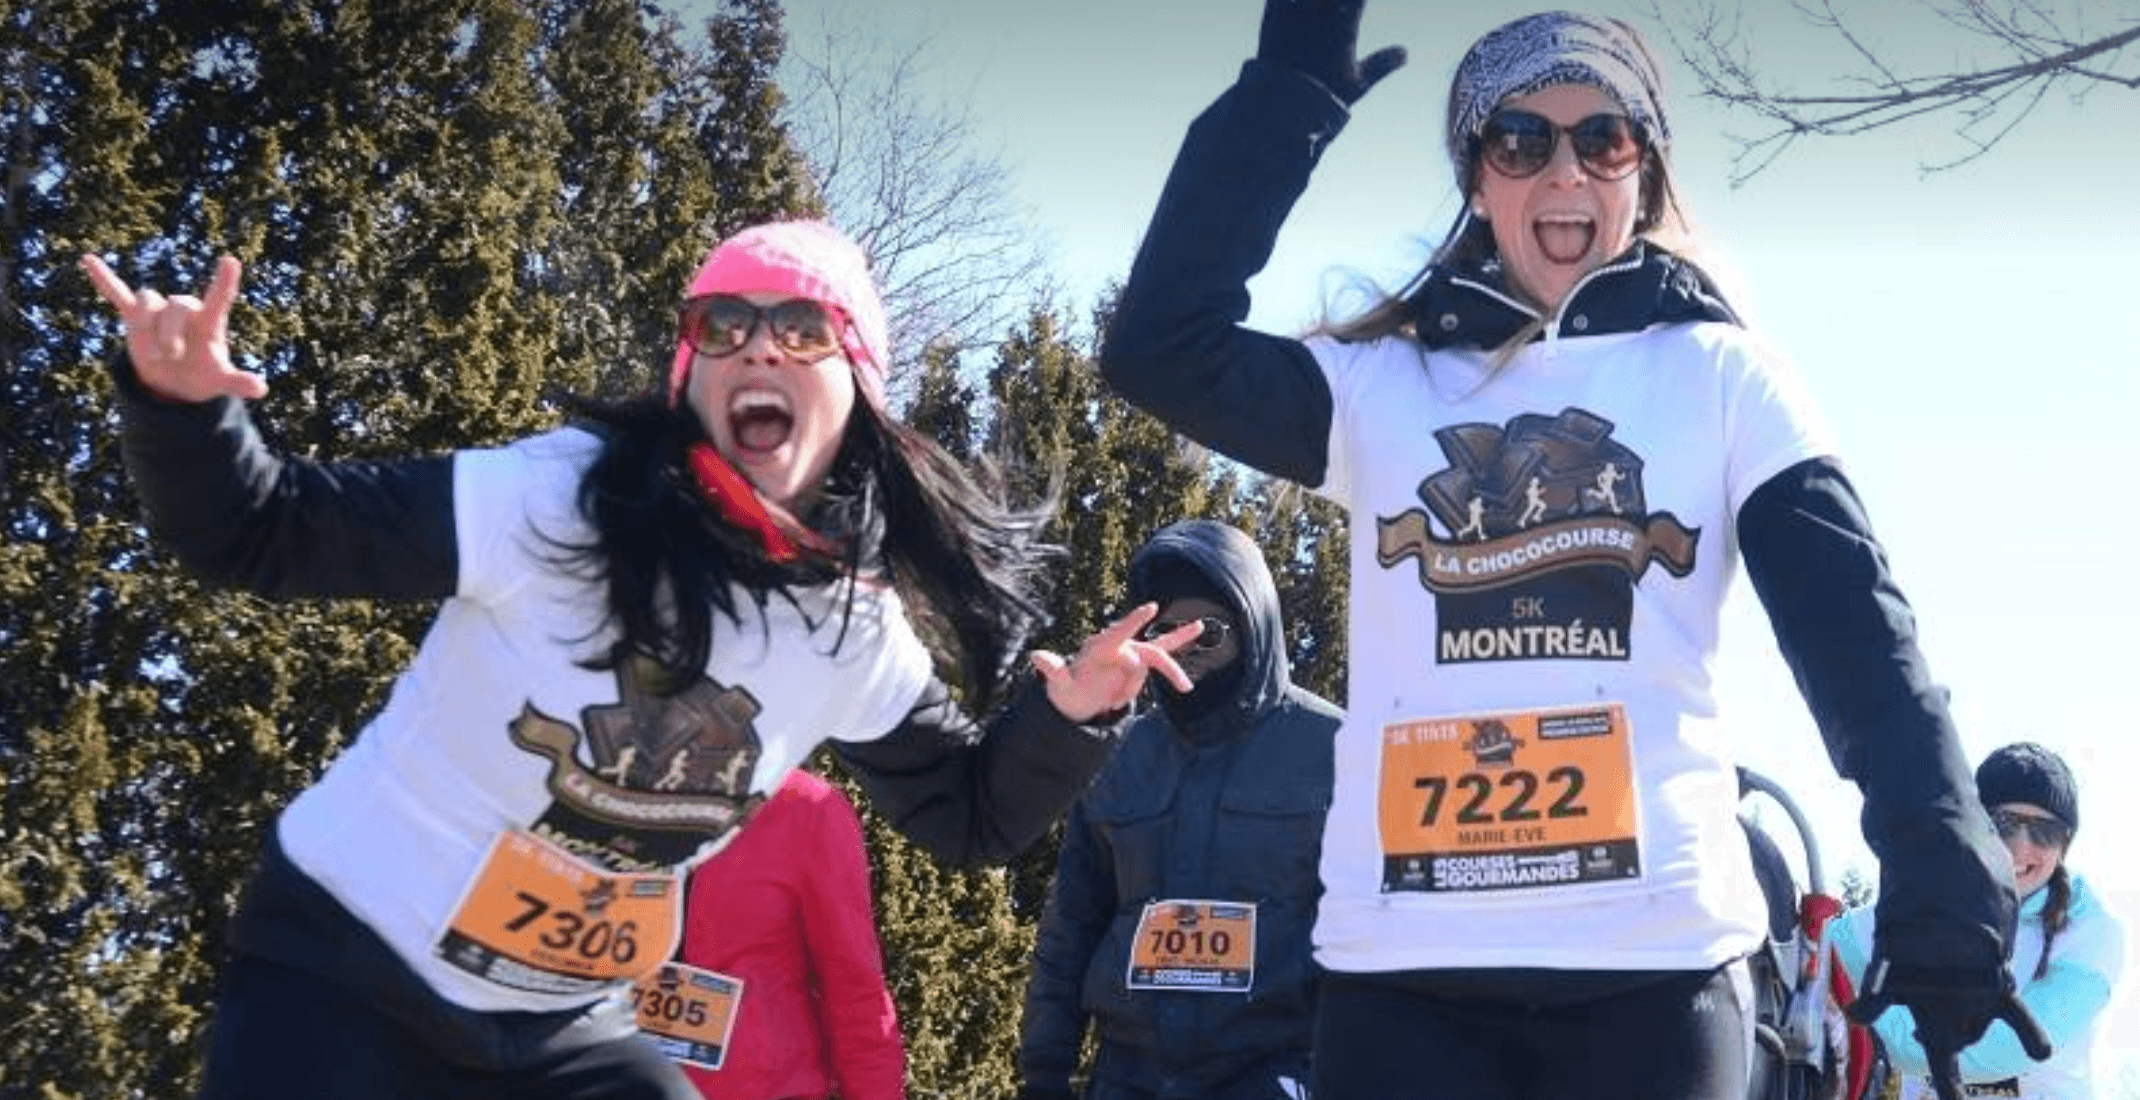 A 5 km 'chocolate run' is happening in Montreal next month